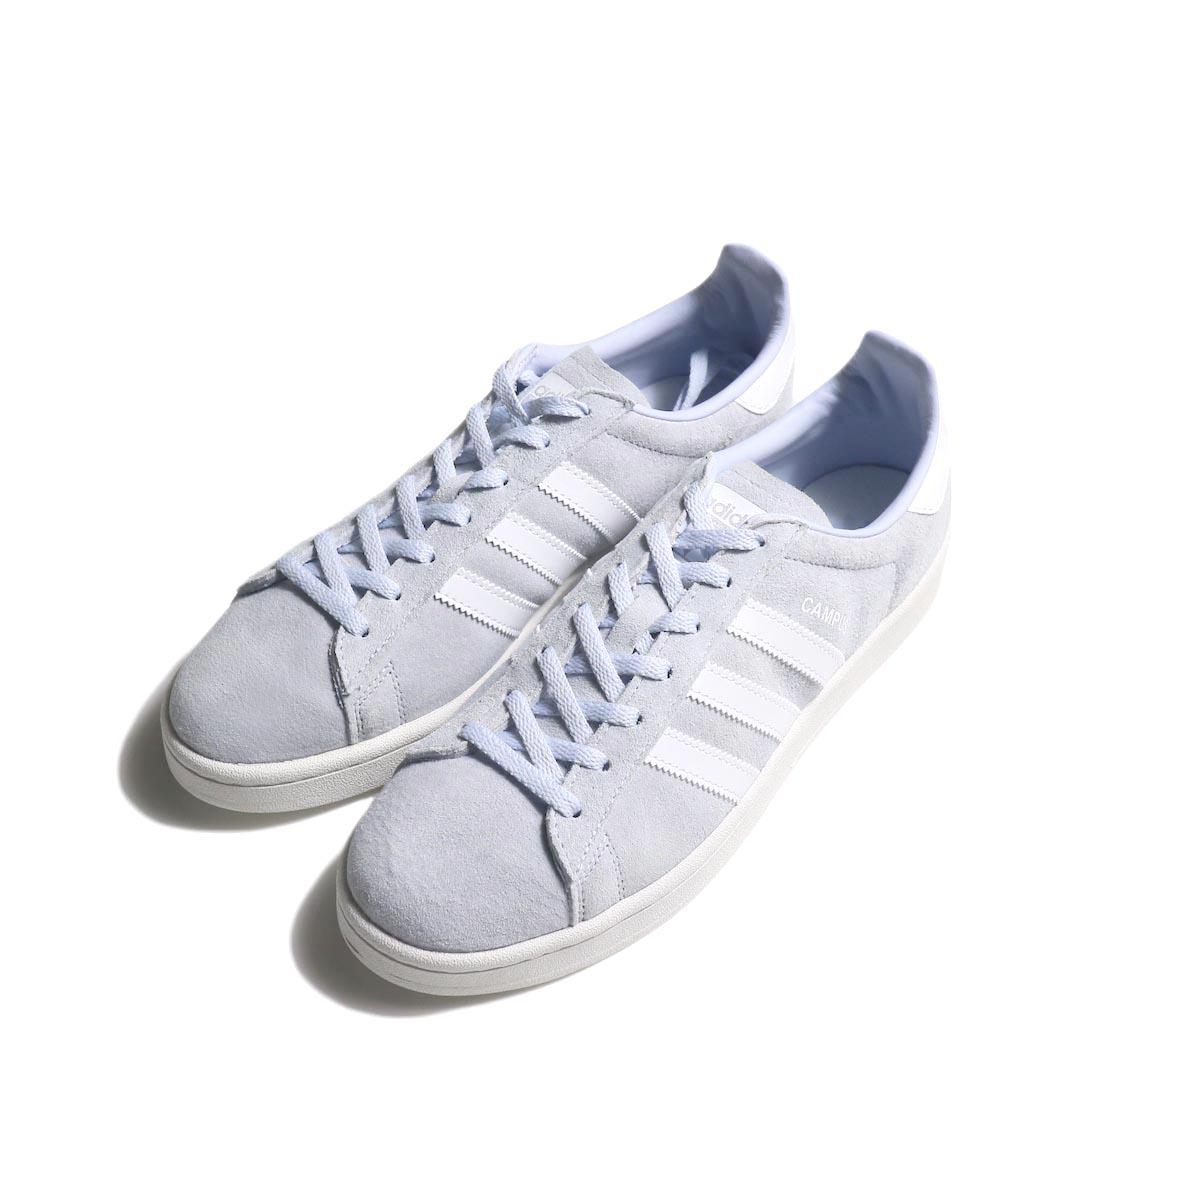 adidas originals / CAMPUS W